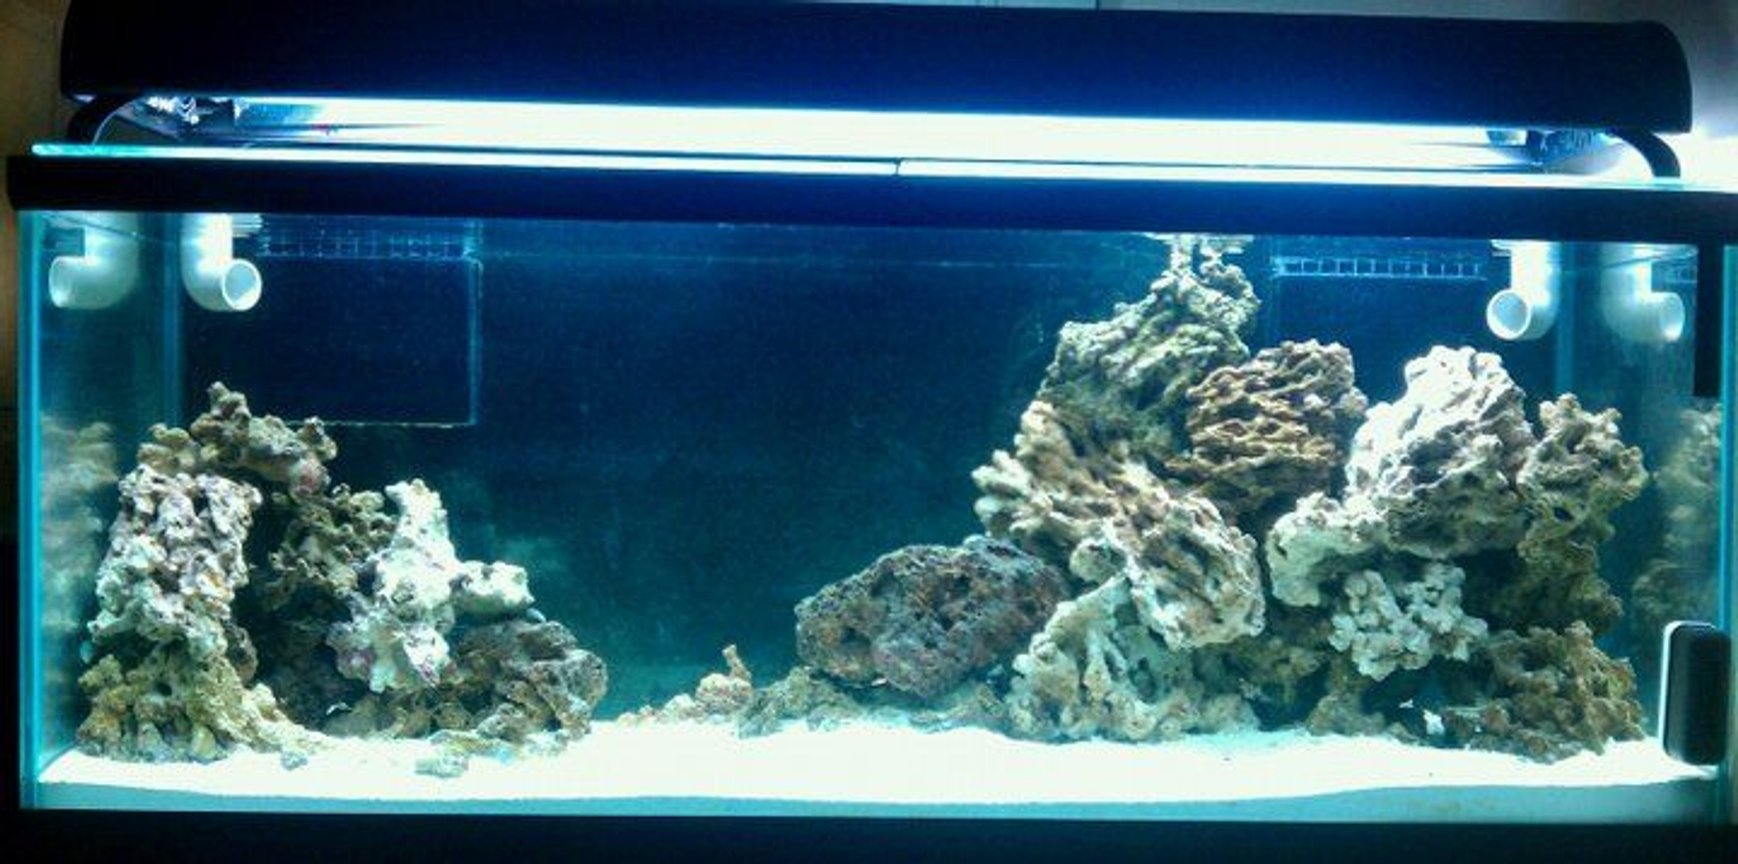 fish tank picture - Work in Progress